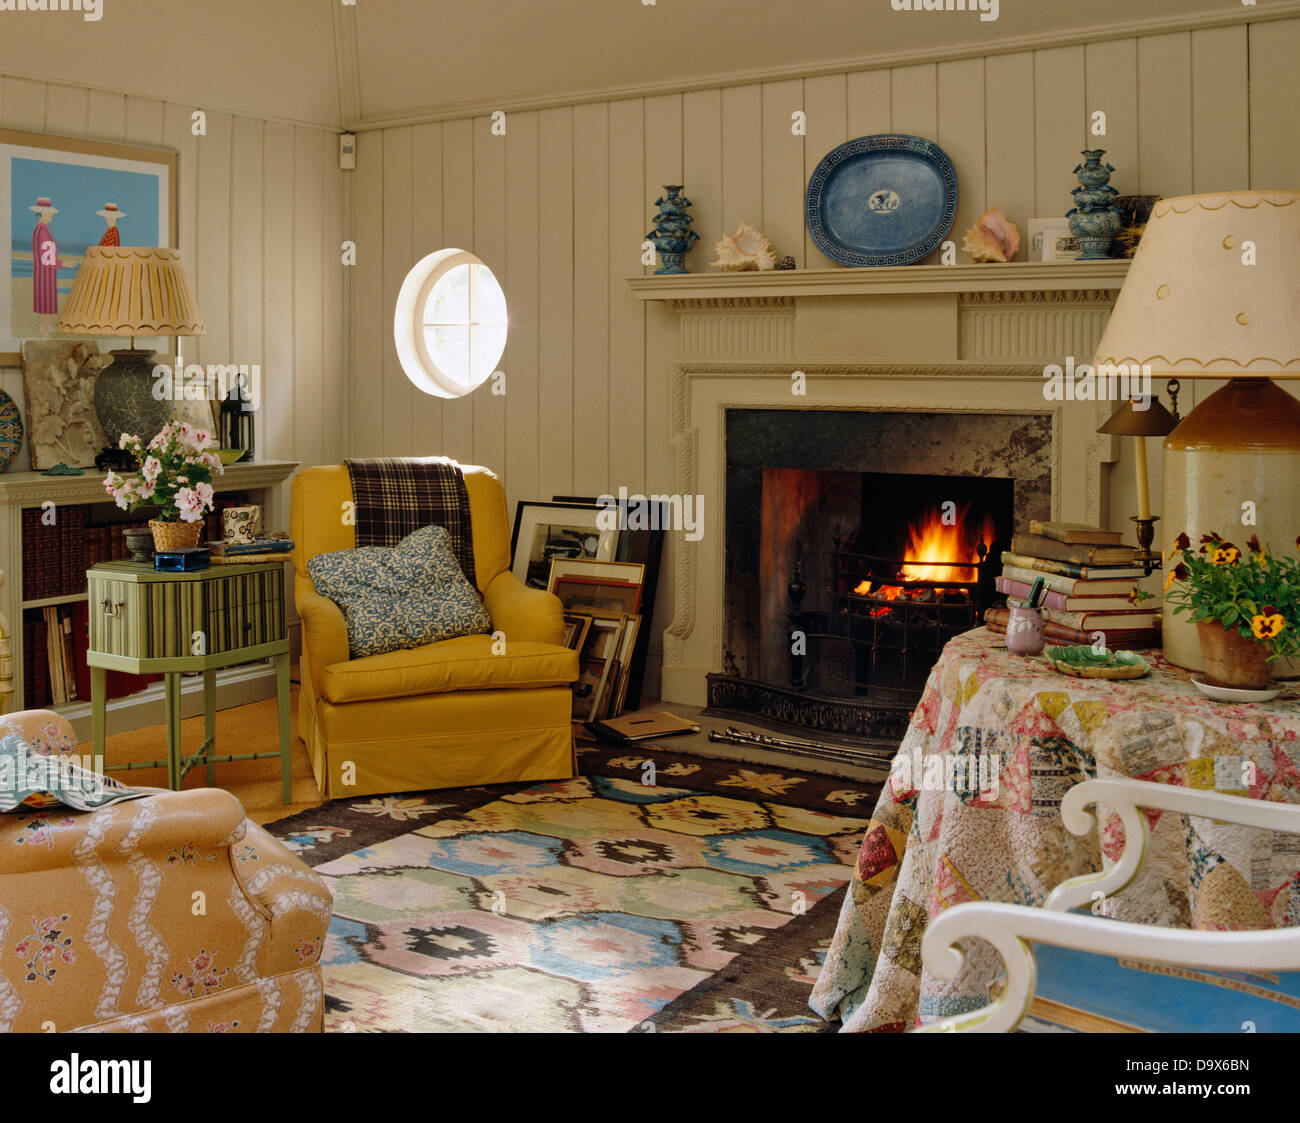 upholstered yellow armchair next to lit fire in country living